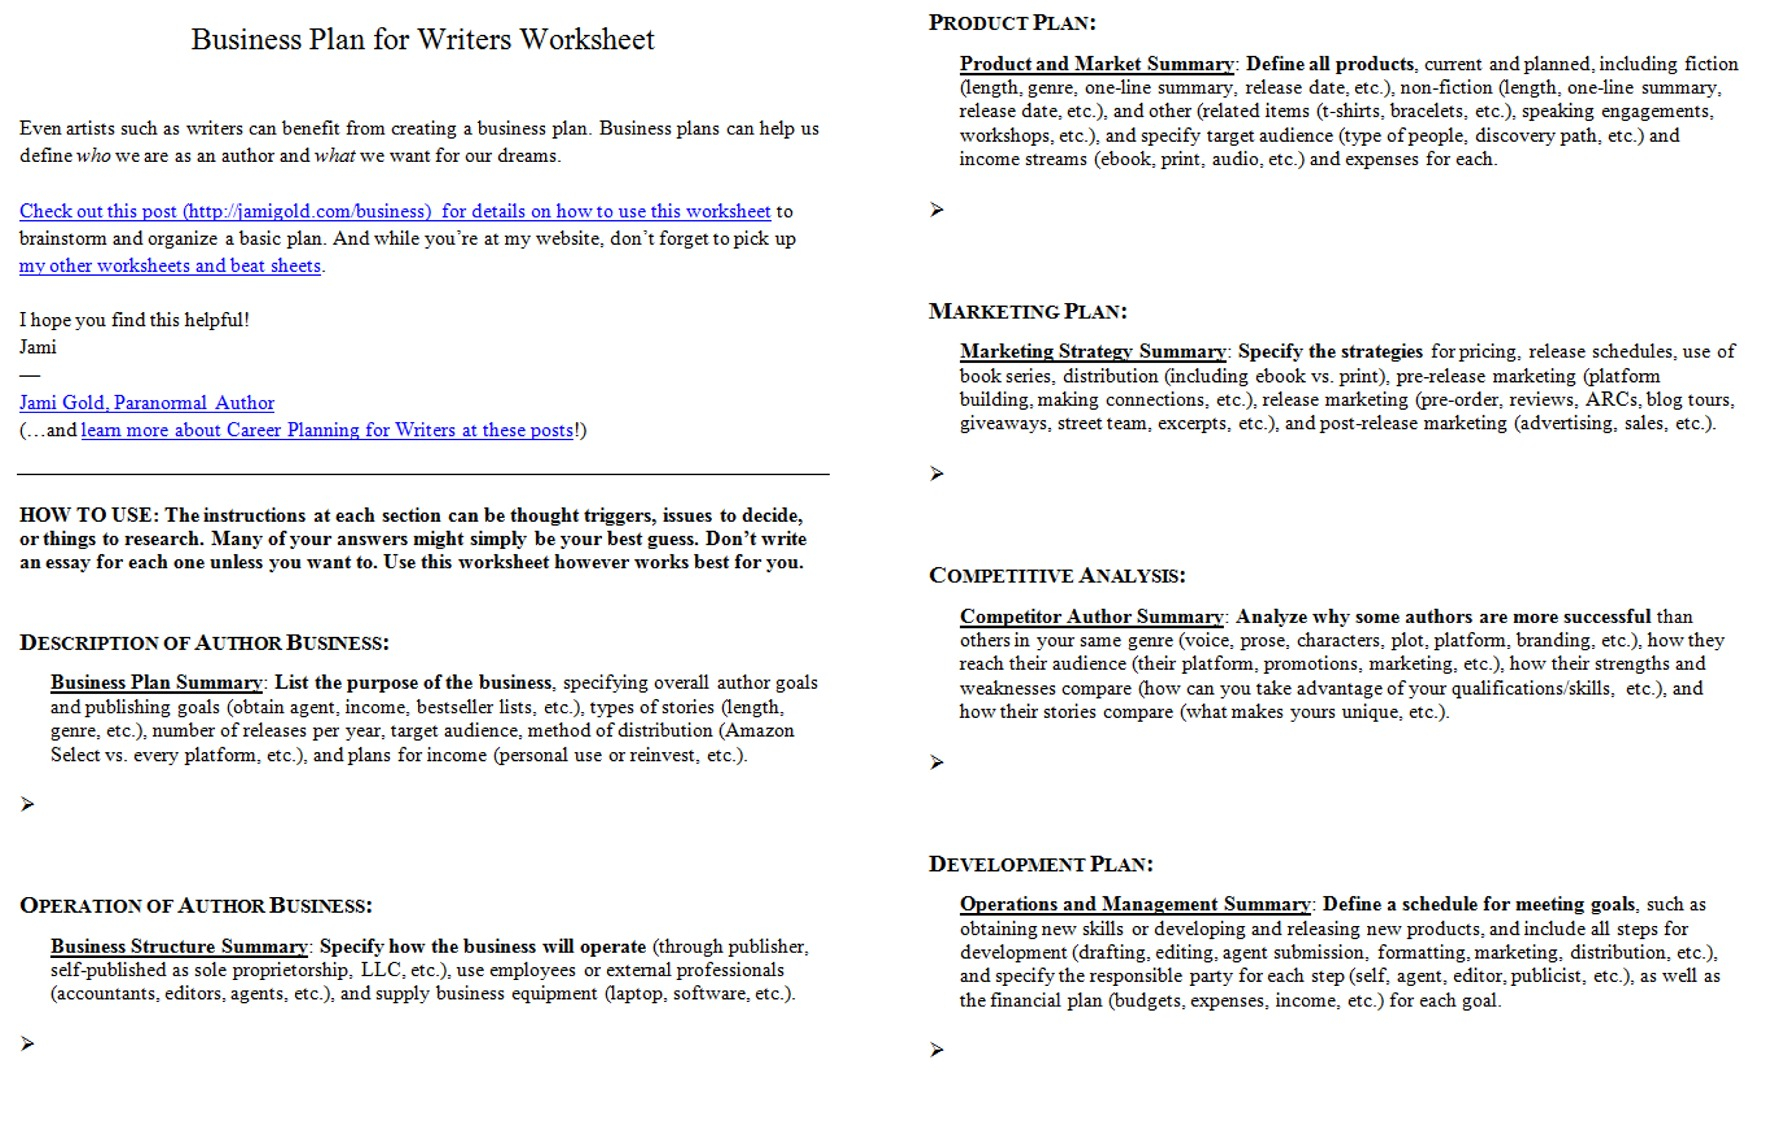 Weirdmailus  Pretty Worksheets For Writers  Jami Gold Paranormal Author With Glamorous Screen Shot Of Both Pages Of The Business Plan For Writers Worksheet With Enchanting Connectives Worksheet Ks Also Fraction Wall Worksheet In Addition Short Vowel And Long Vowel Worksheets And Comparative Superlative Worksheet Pdf As Well As Synonyms   Antonyms Worksheets Additionally Word Search Worksheets For Kindergarten From Jamigoldcom With Weirdmailus  Glamorous Worksheets For Writers  Jami Gold Paranormal Author With Enchanting Screen Shot Of Both Pages Of The Business Plan For Writers Worksheet And Pretty Connectives Worksheet Ks Also Fraction Wall Worksheet In Addition Short Vowel And Long Vowel Worksheets From Jamigoldcom